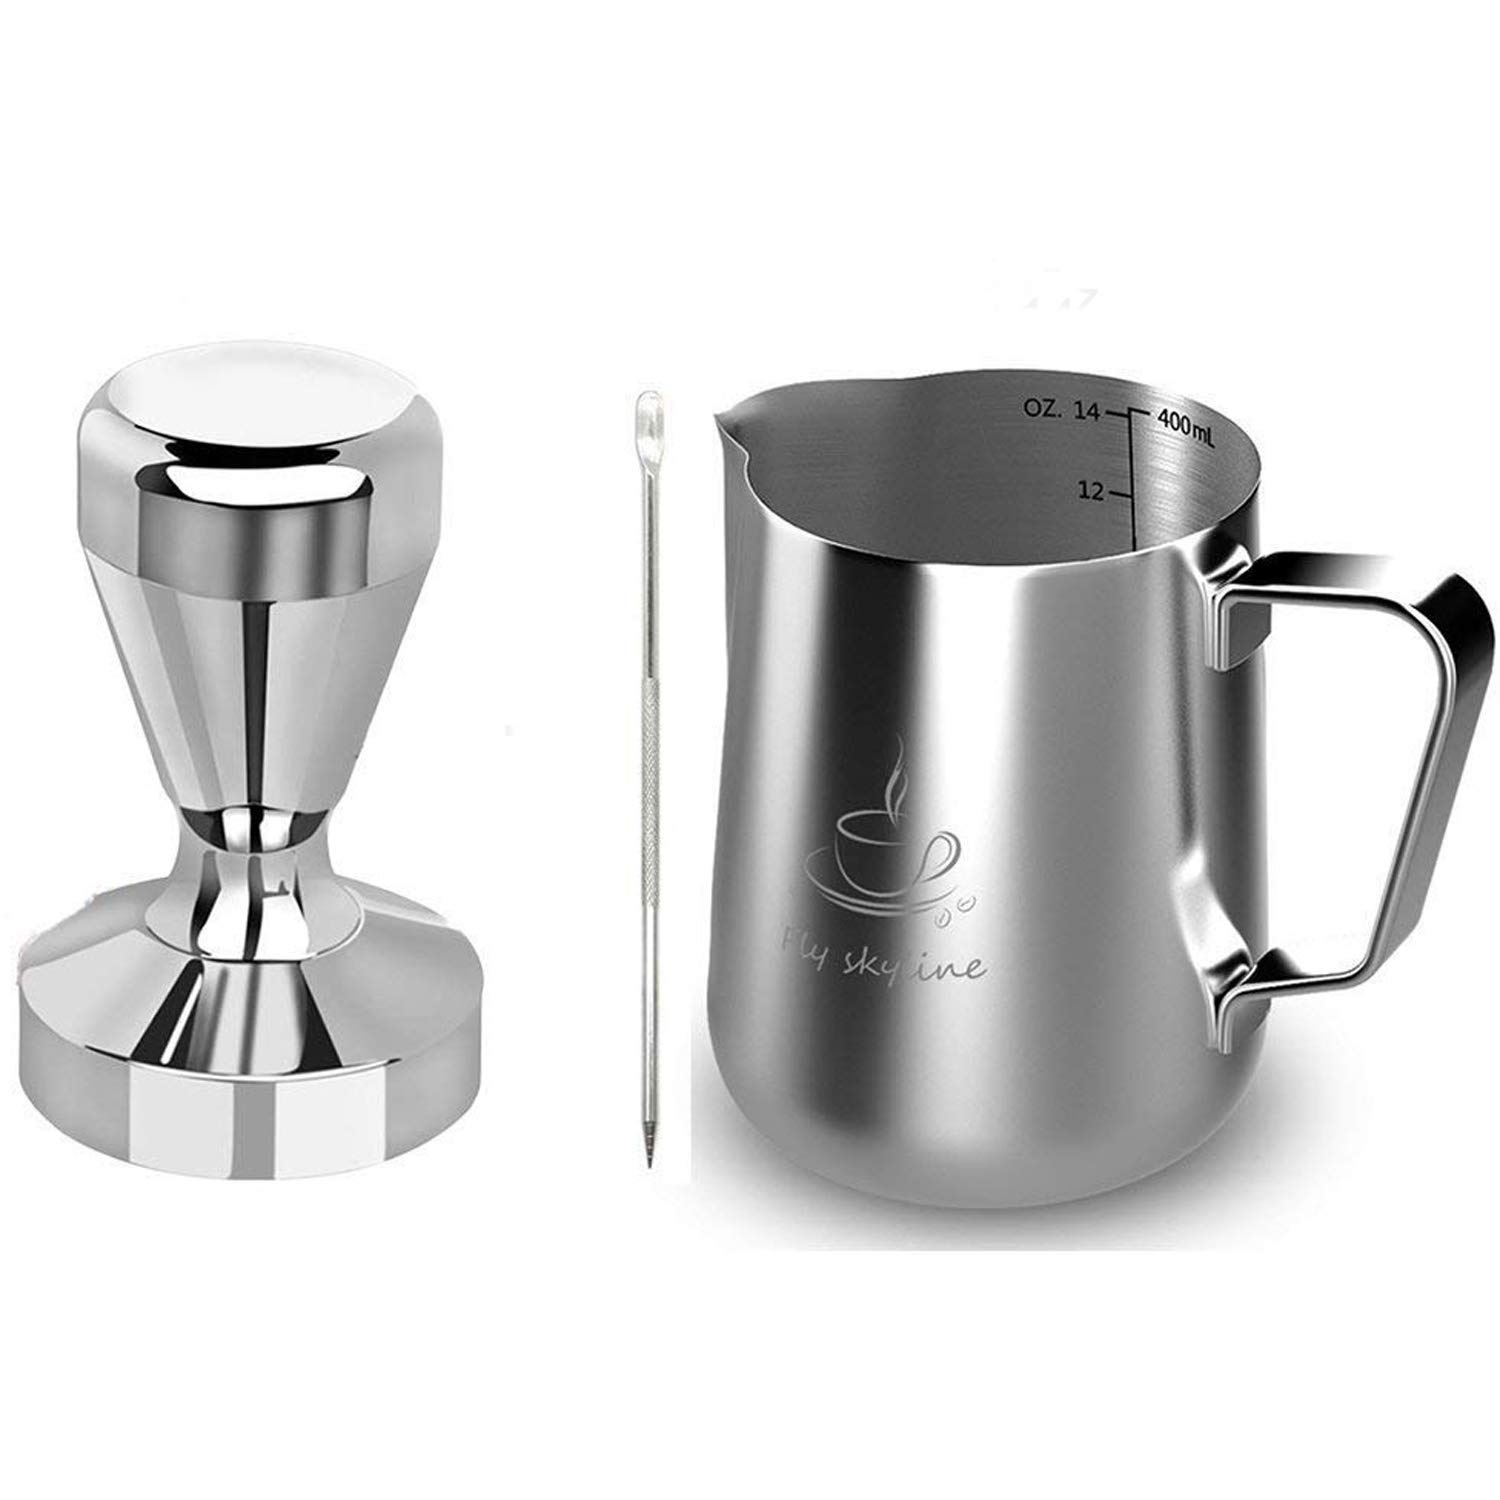 Milk Frothing Pitcher Stainless Steel Measurement Inside the frothing Cup with Latt Art Pen (14oz+58Tamper)